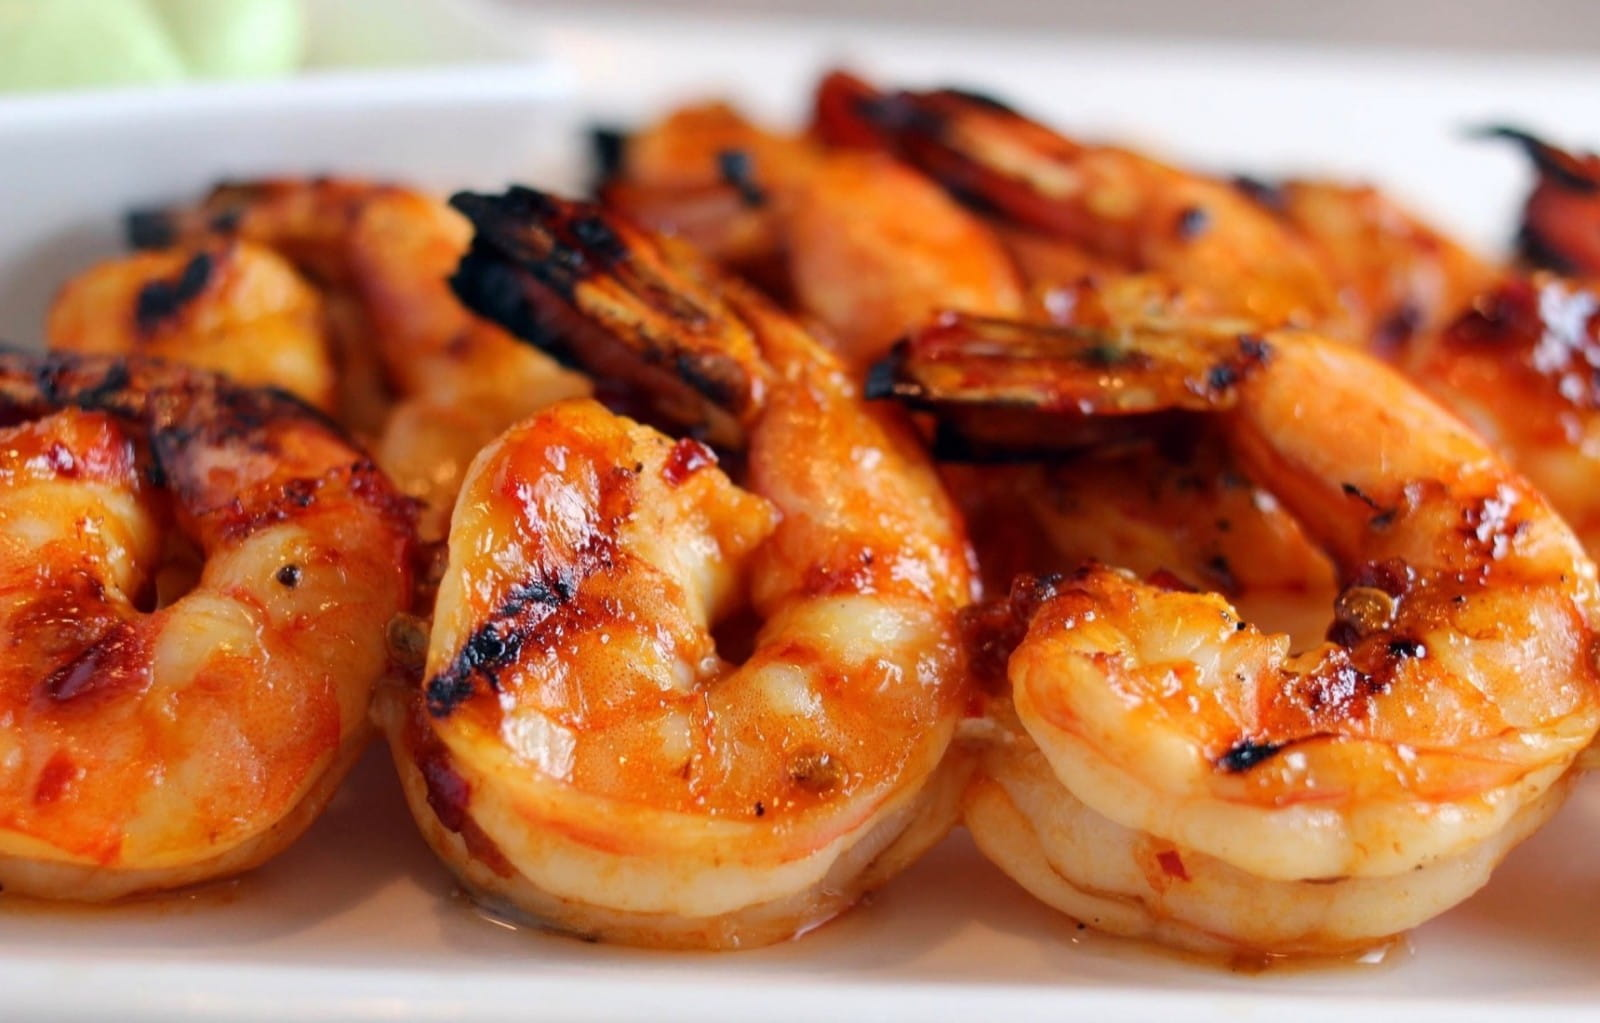 Wine and seafood: the best pairings for prawns or shrimp